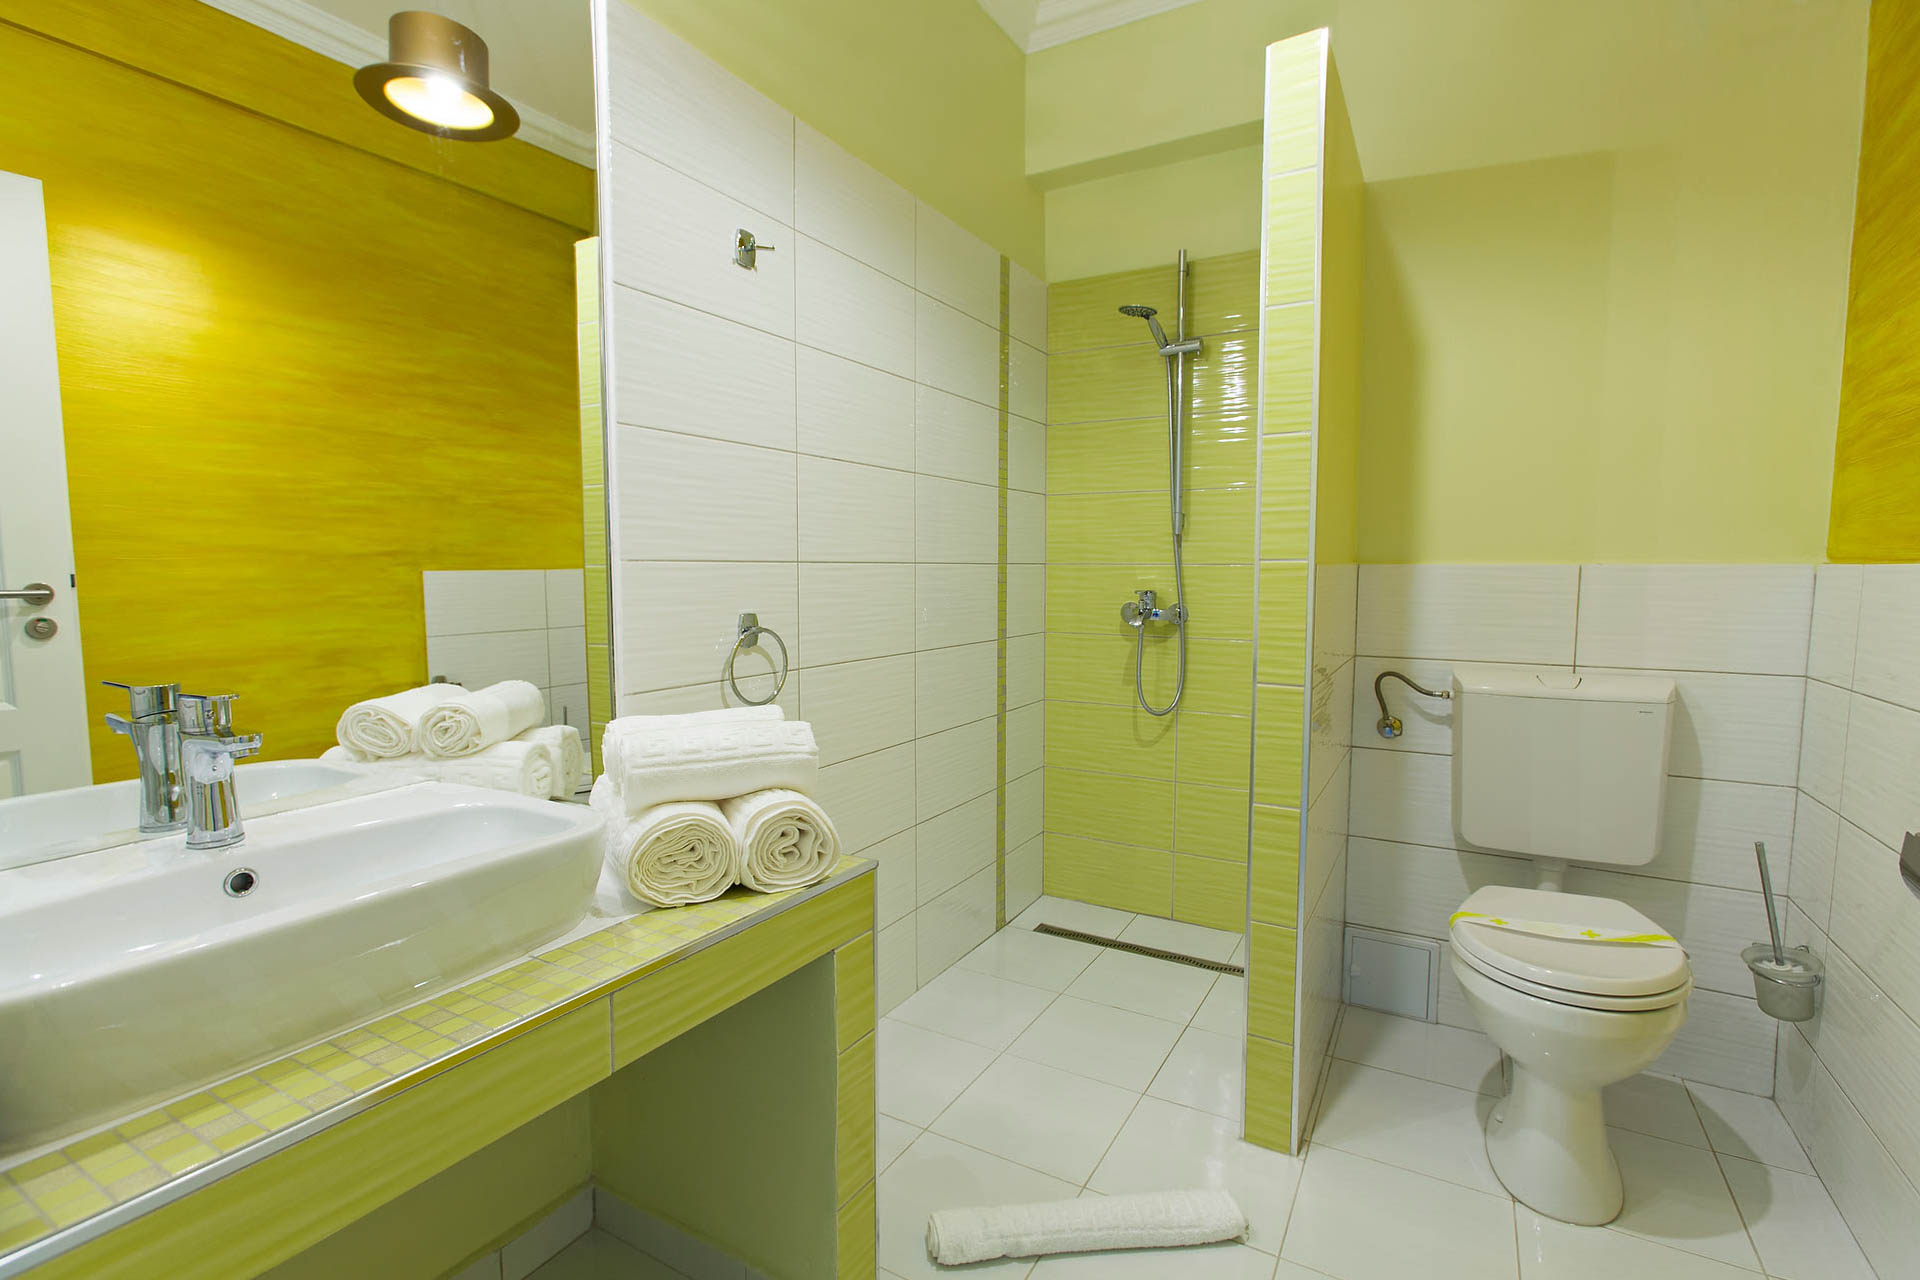 Accommodation Brasov - The Covasna Room - Bathroom